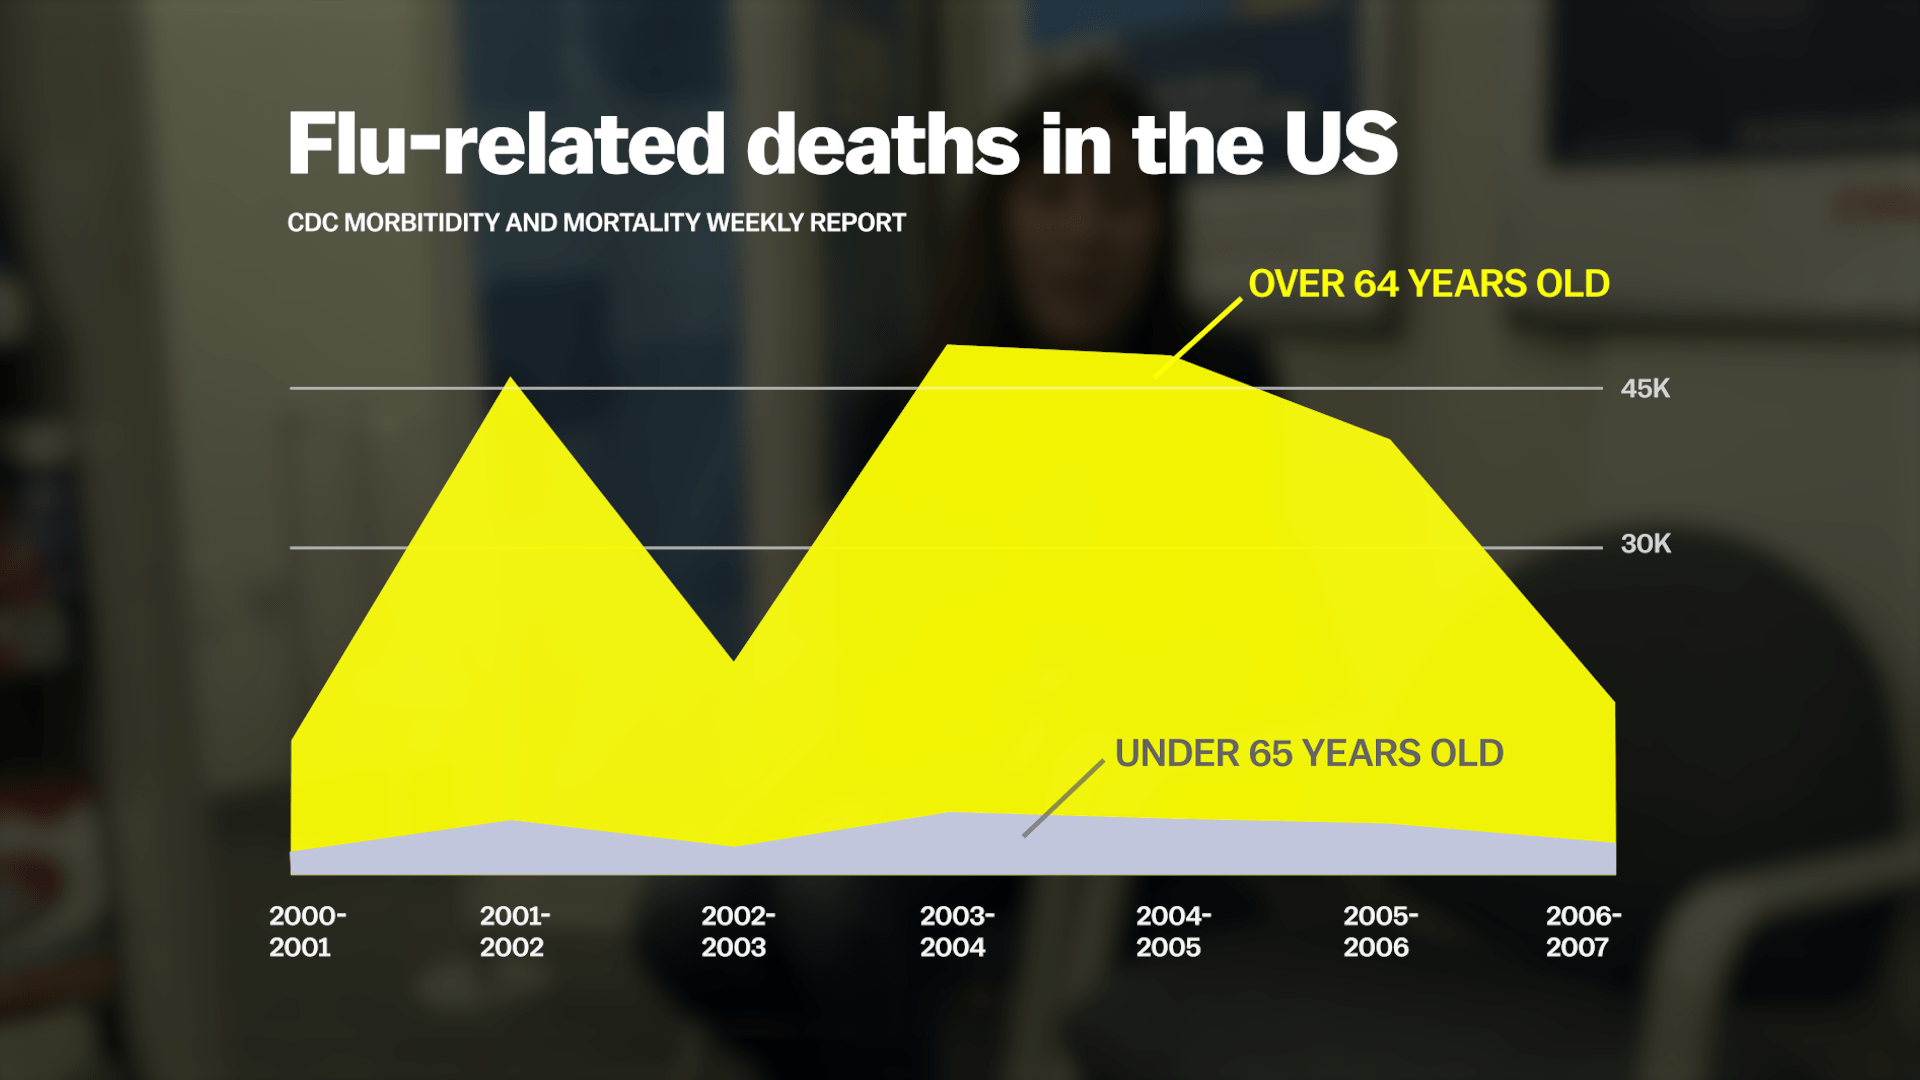 Flu-related deaths